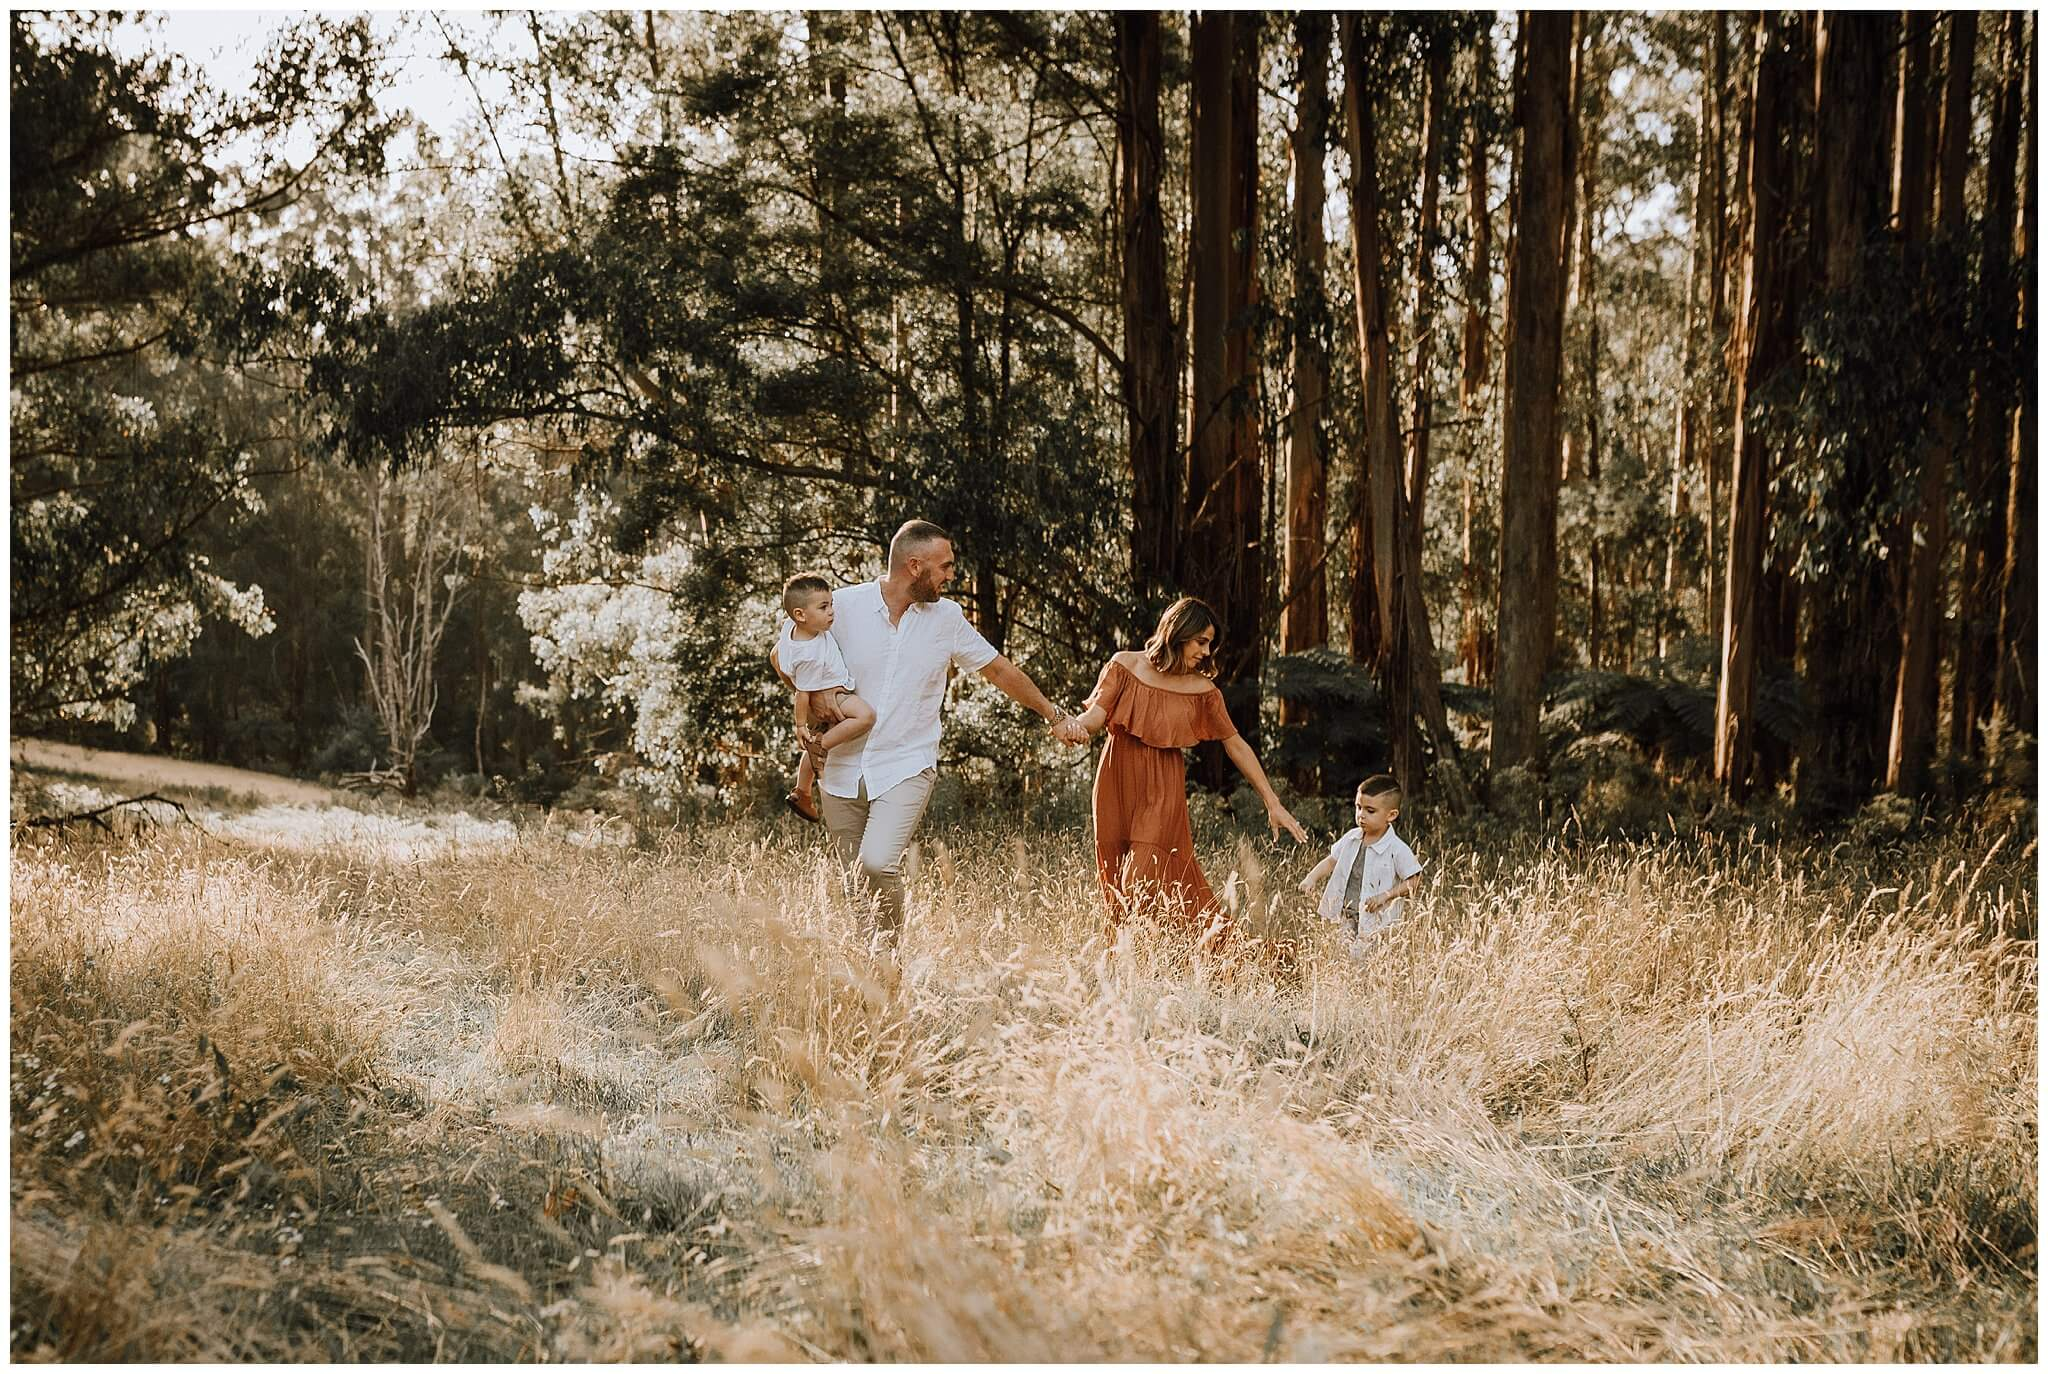 A Family Photography Session In The Dandenongs